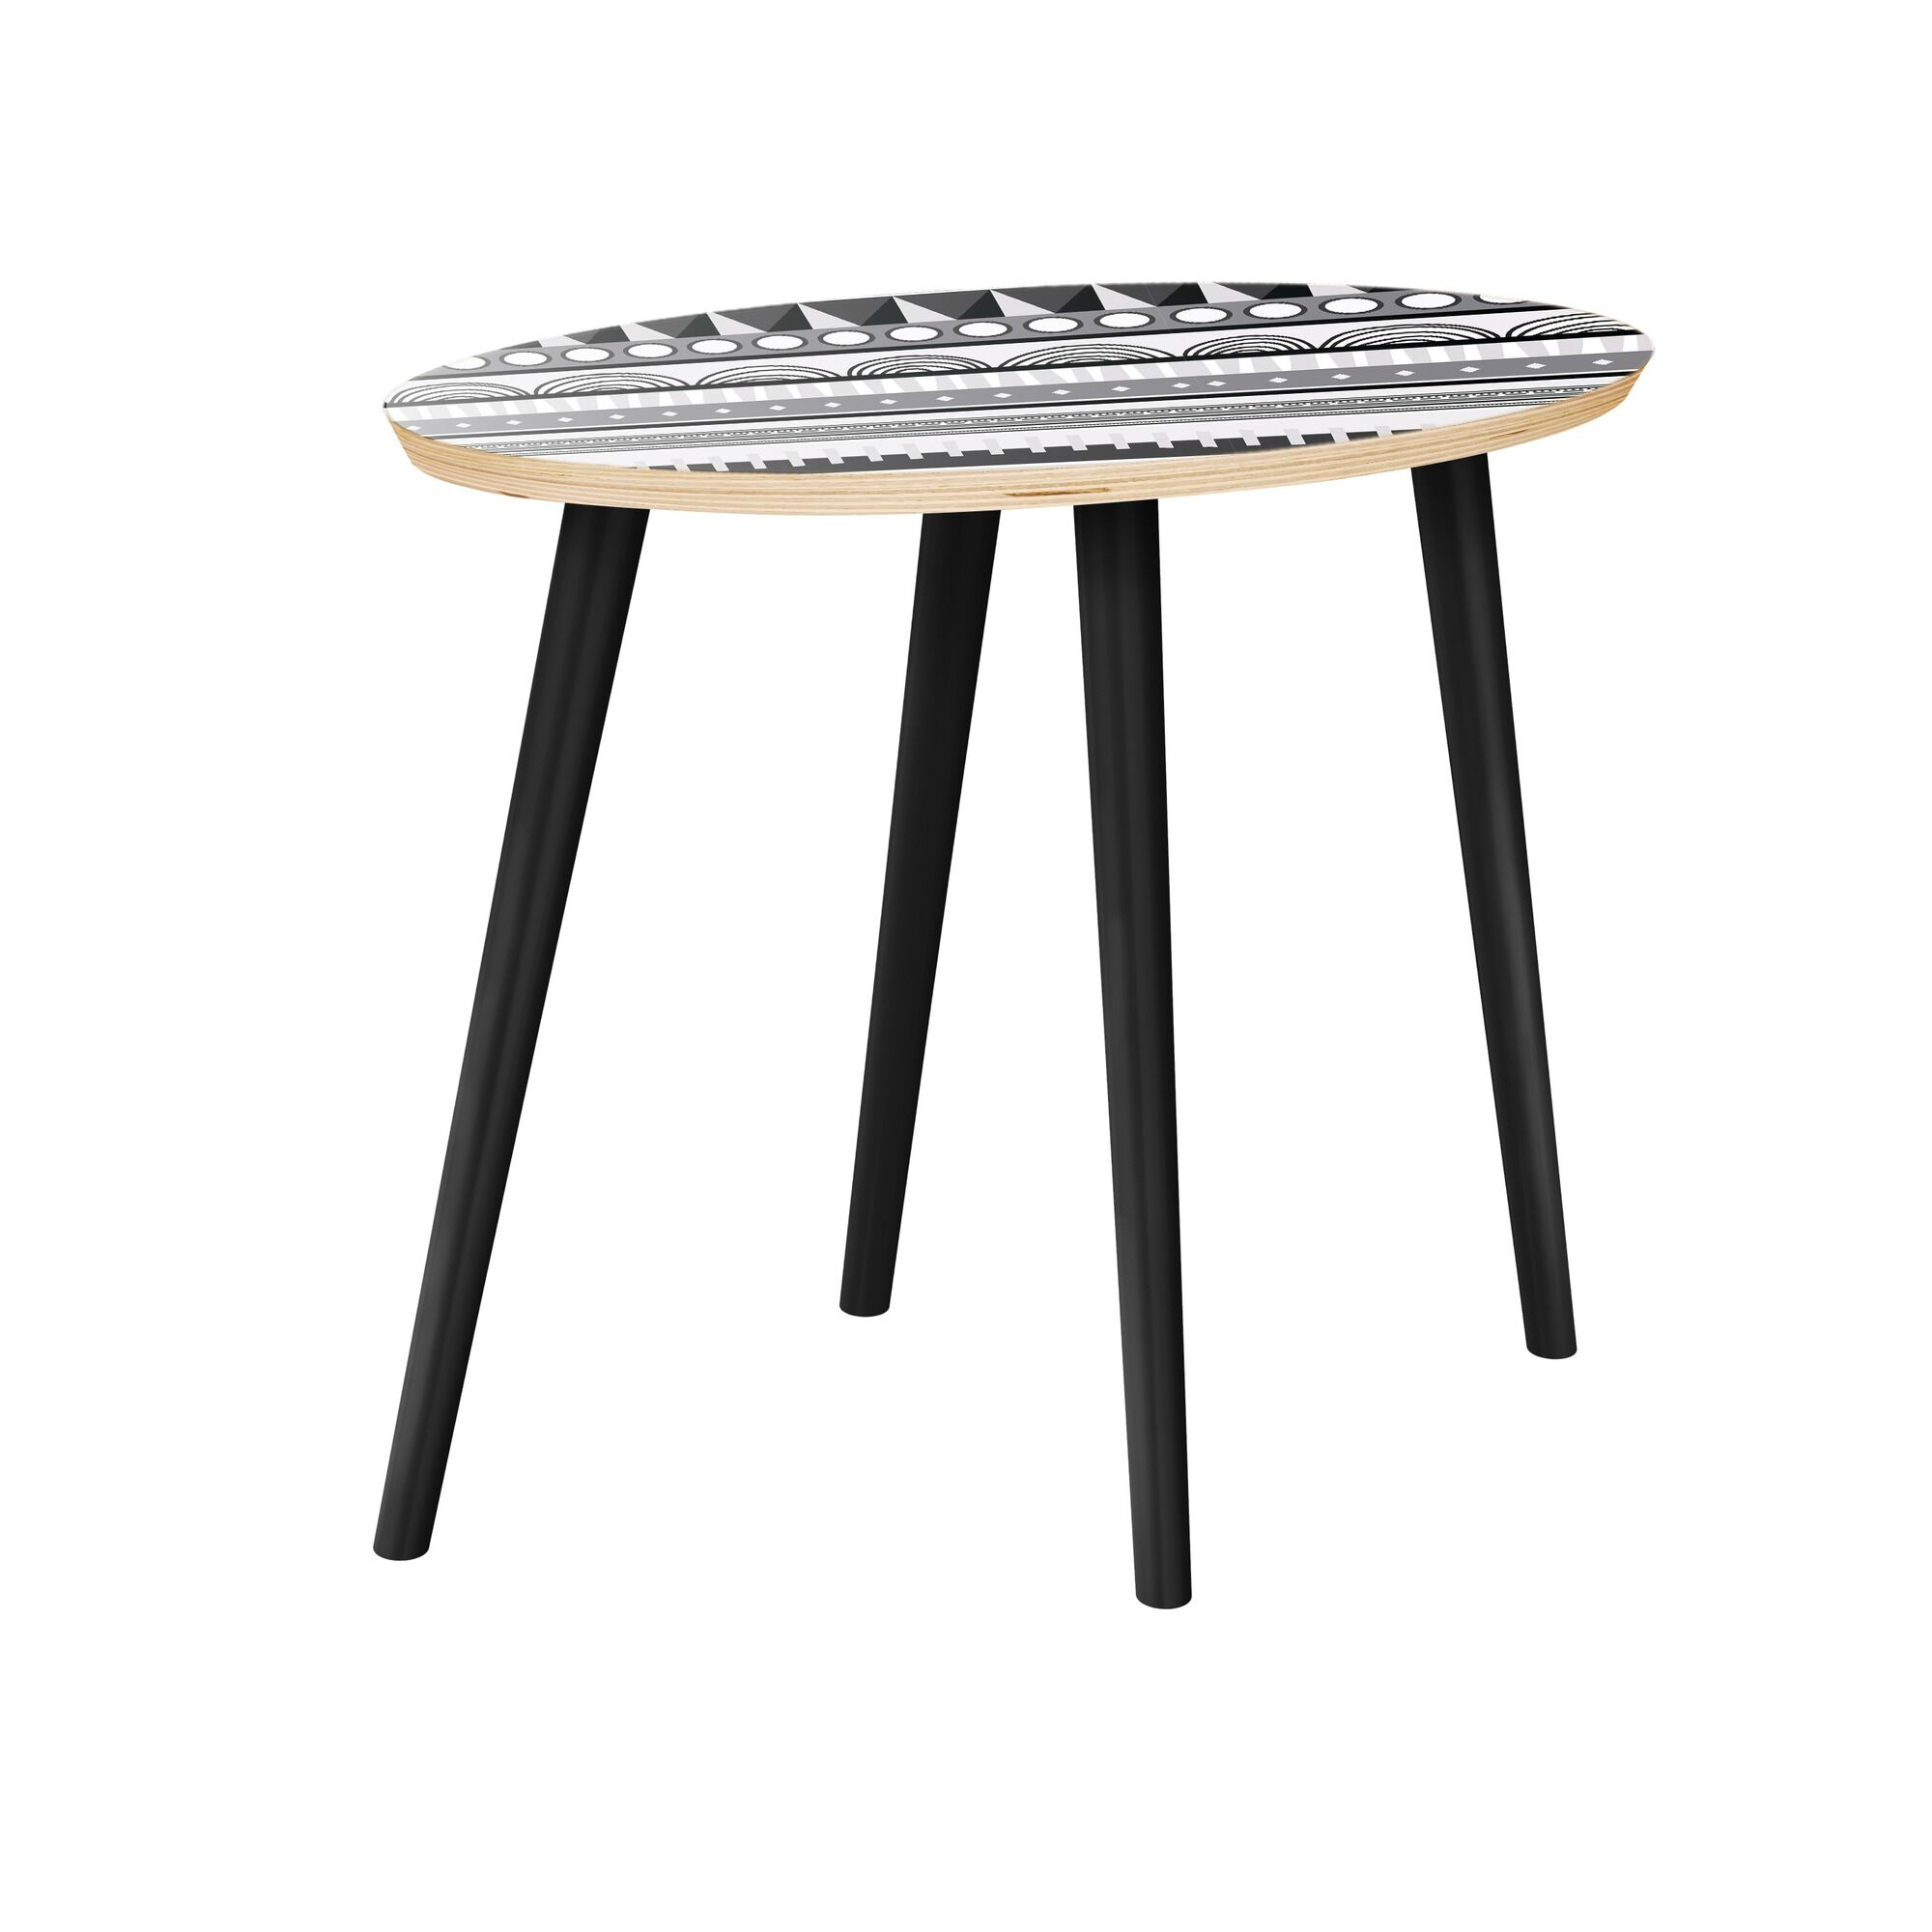 Hulme End Table Table Top Color: Natural, Table Base Color: Black